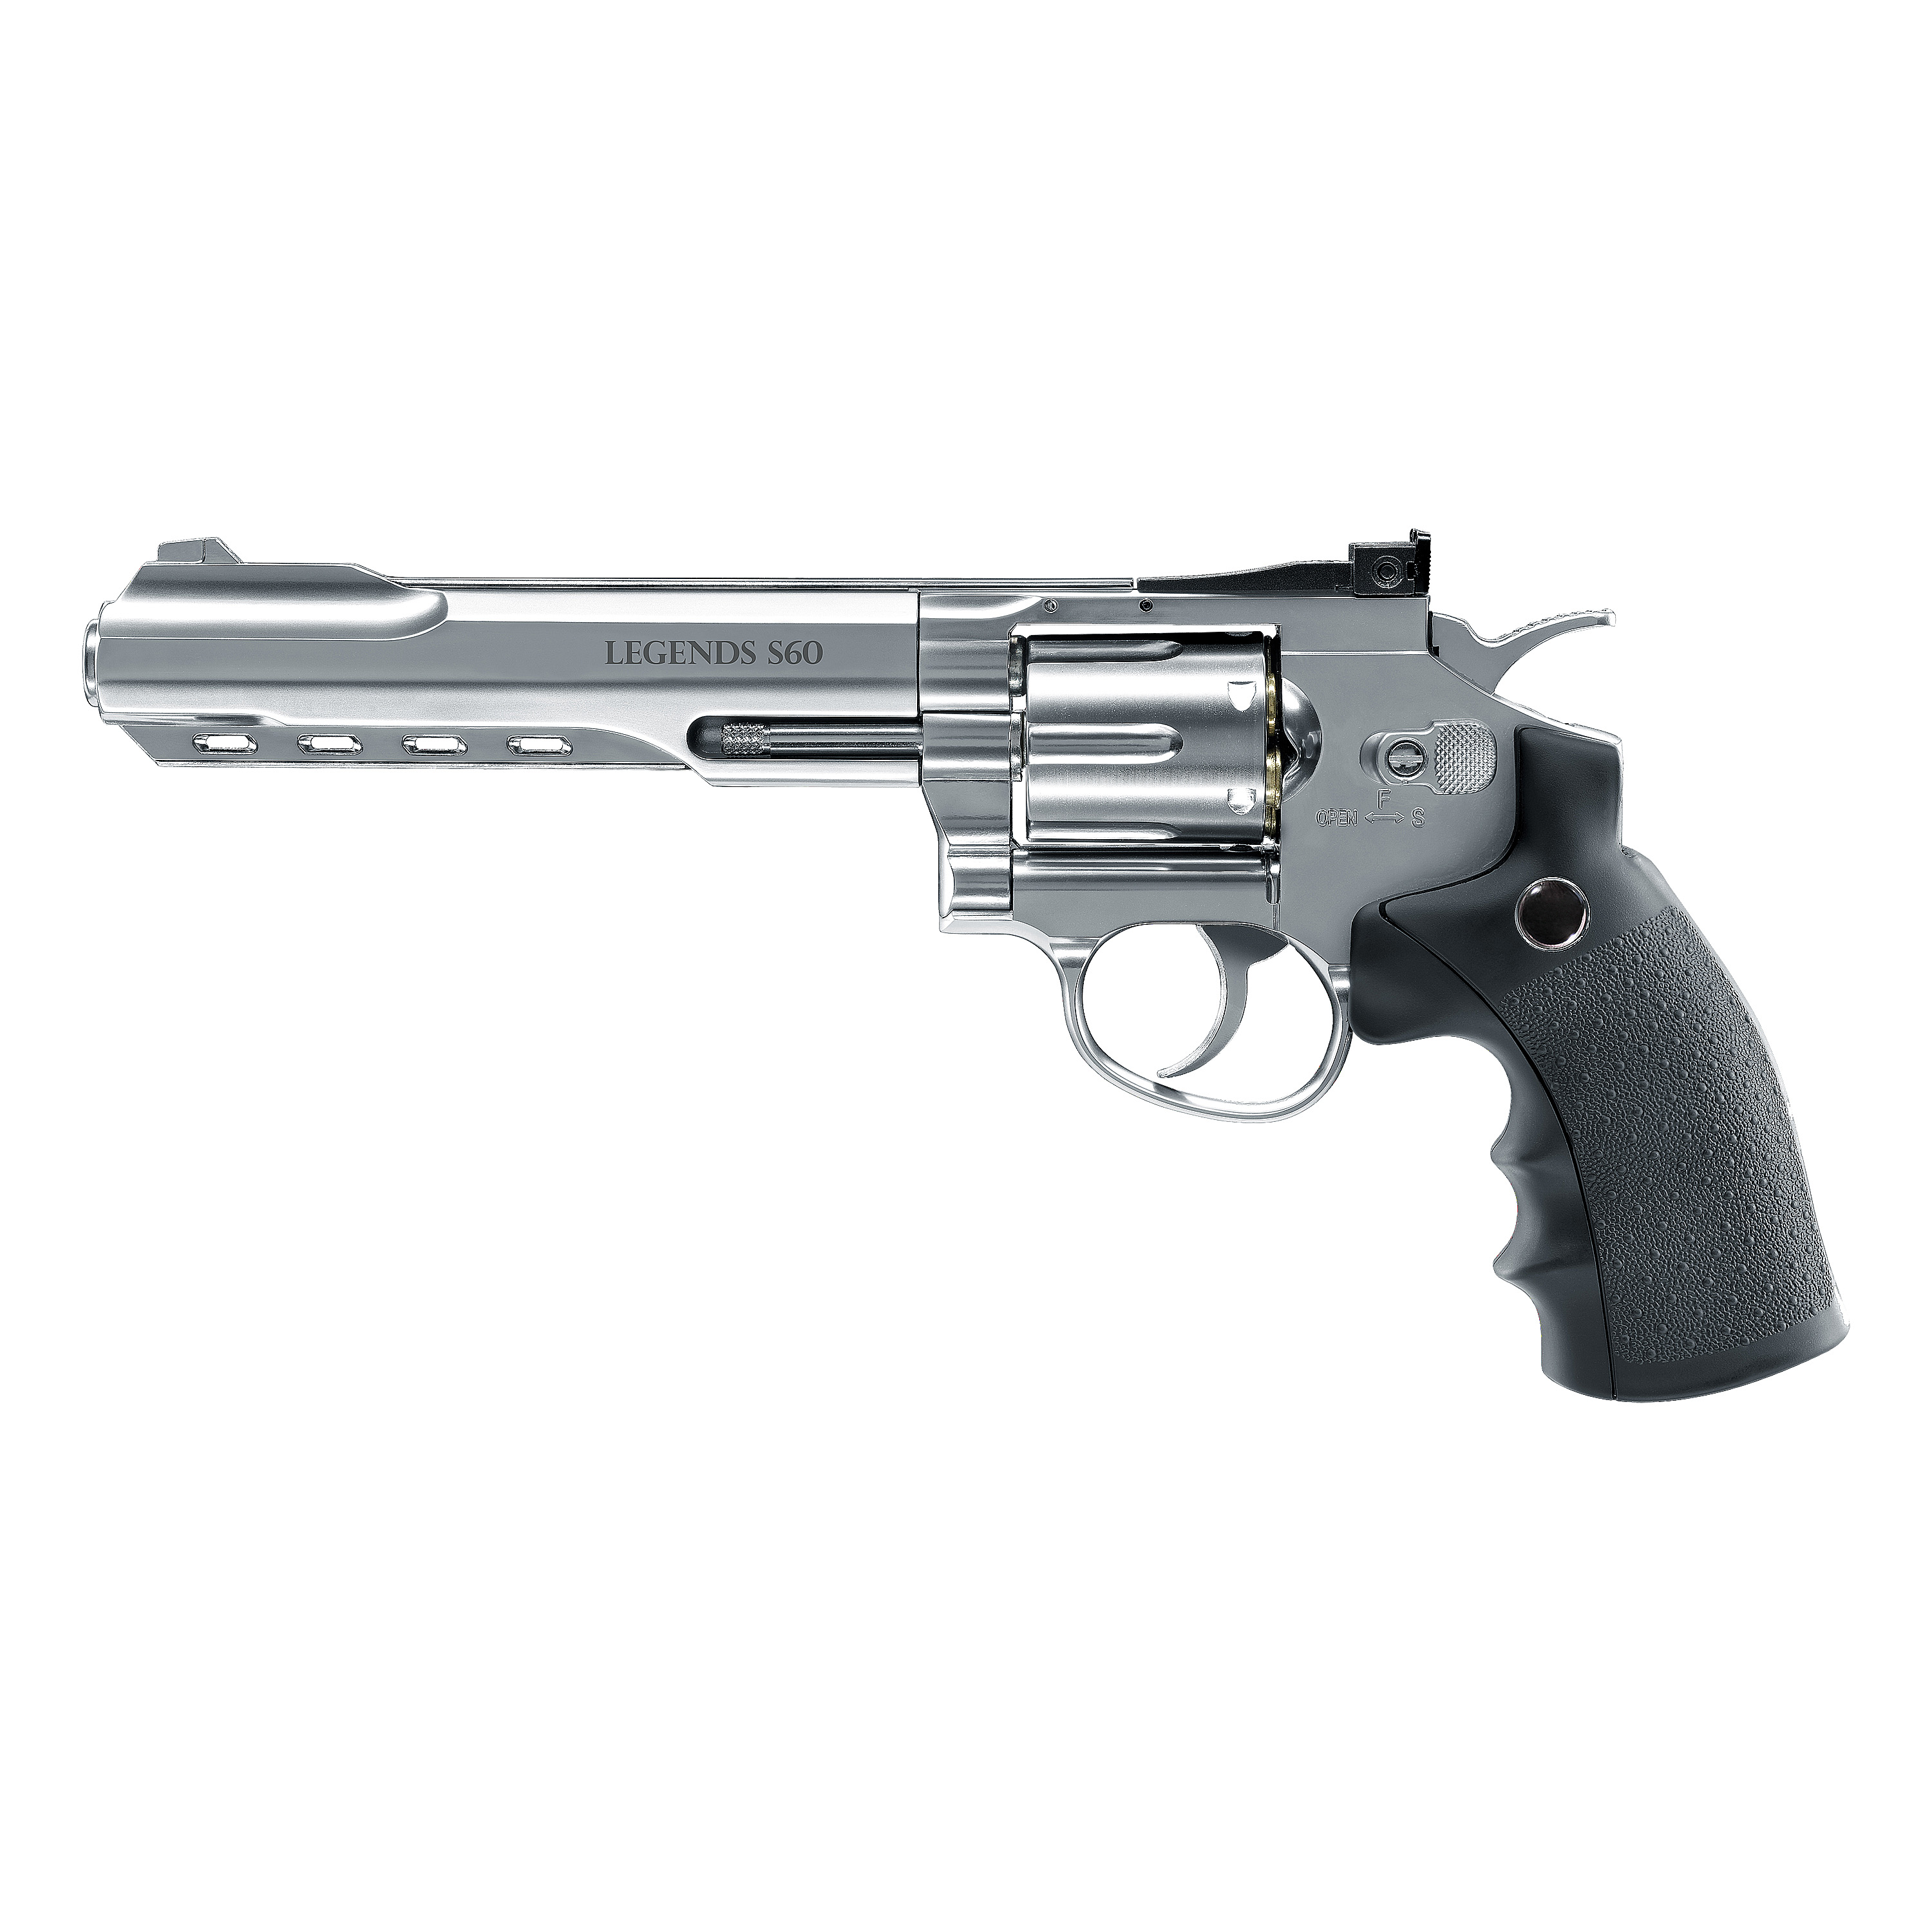 Legends Co2 Revolver S60 4.5 mm